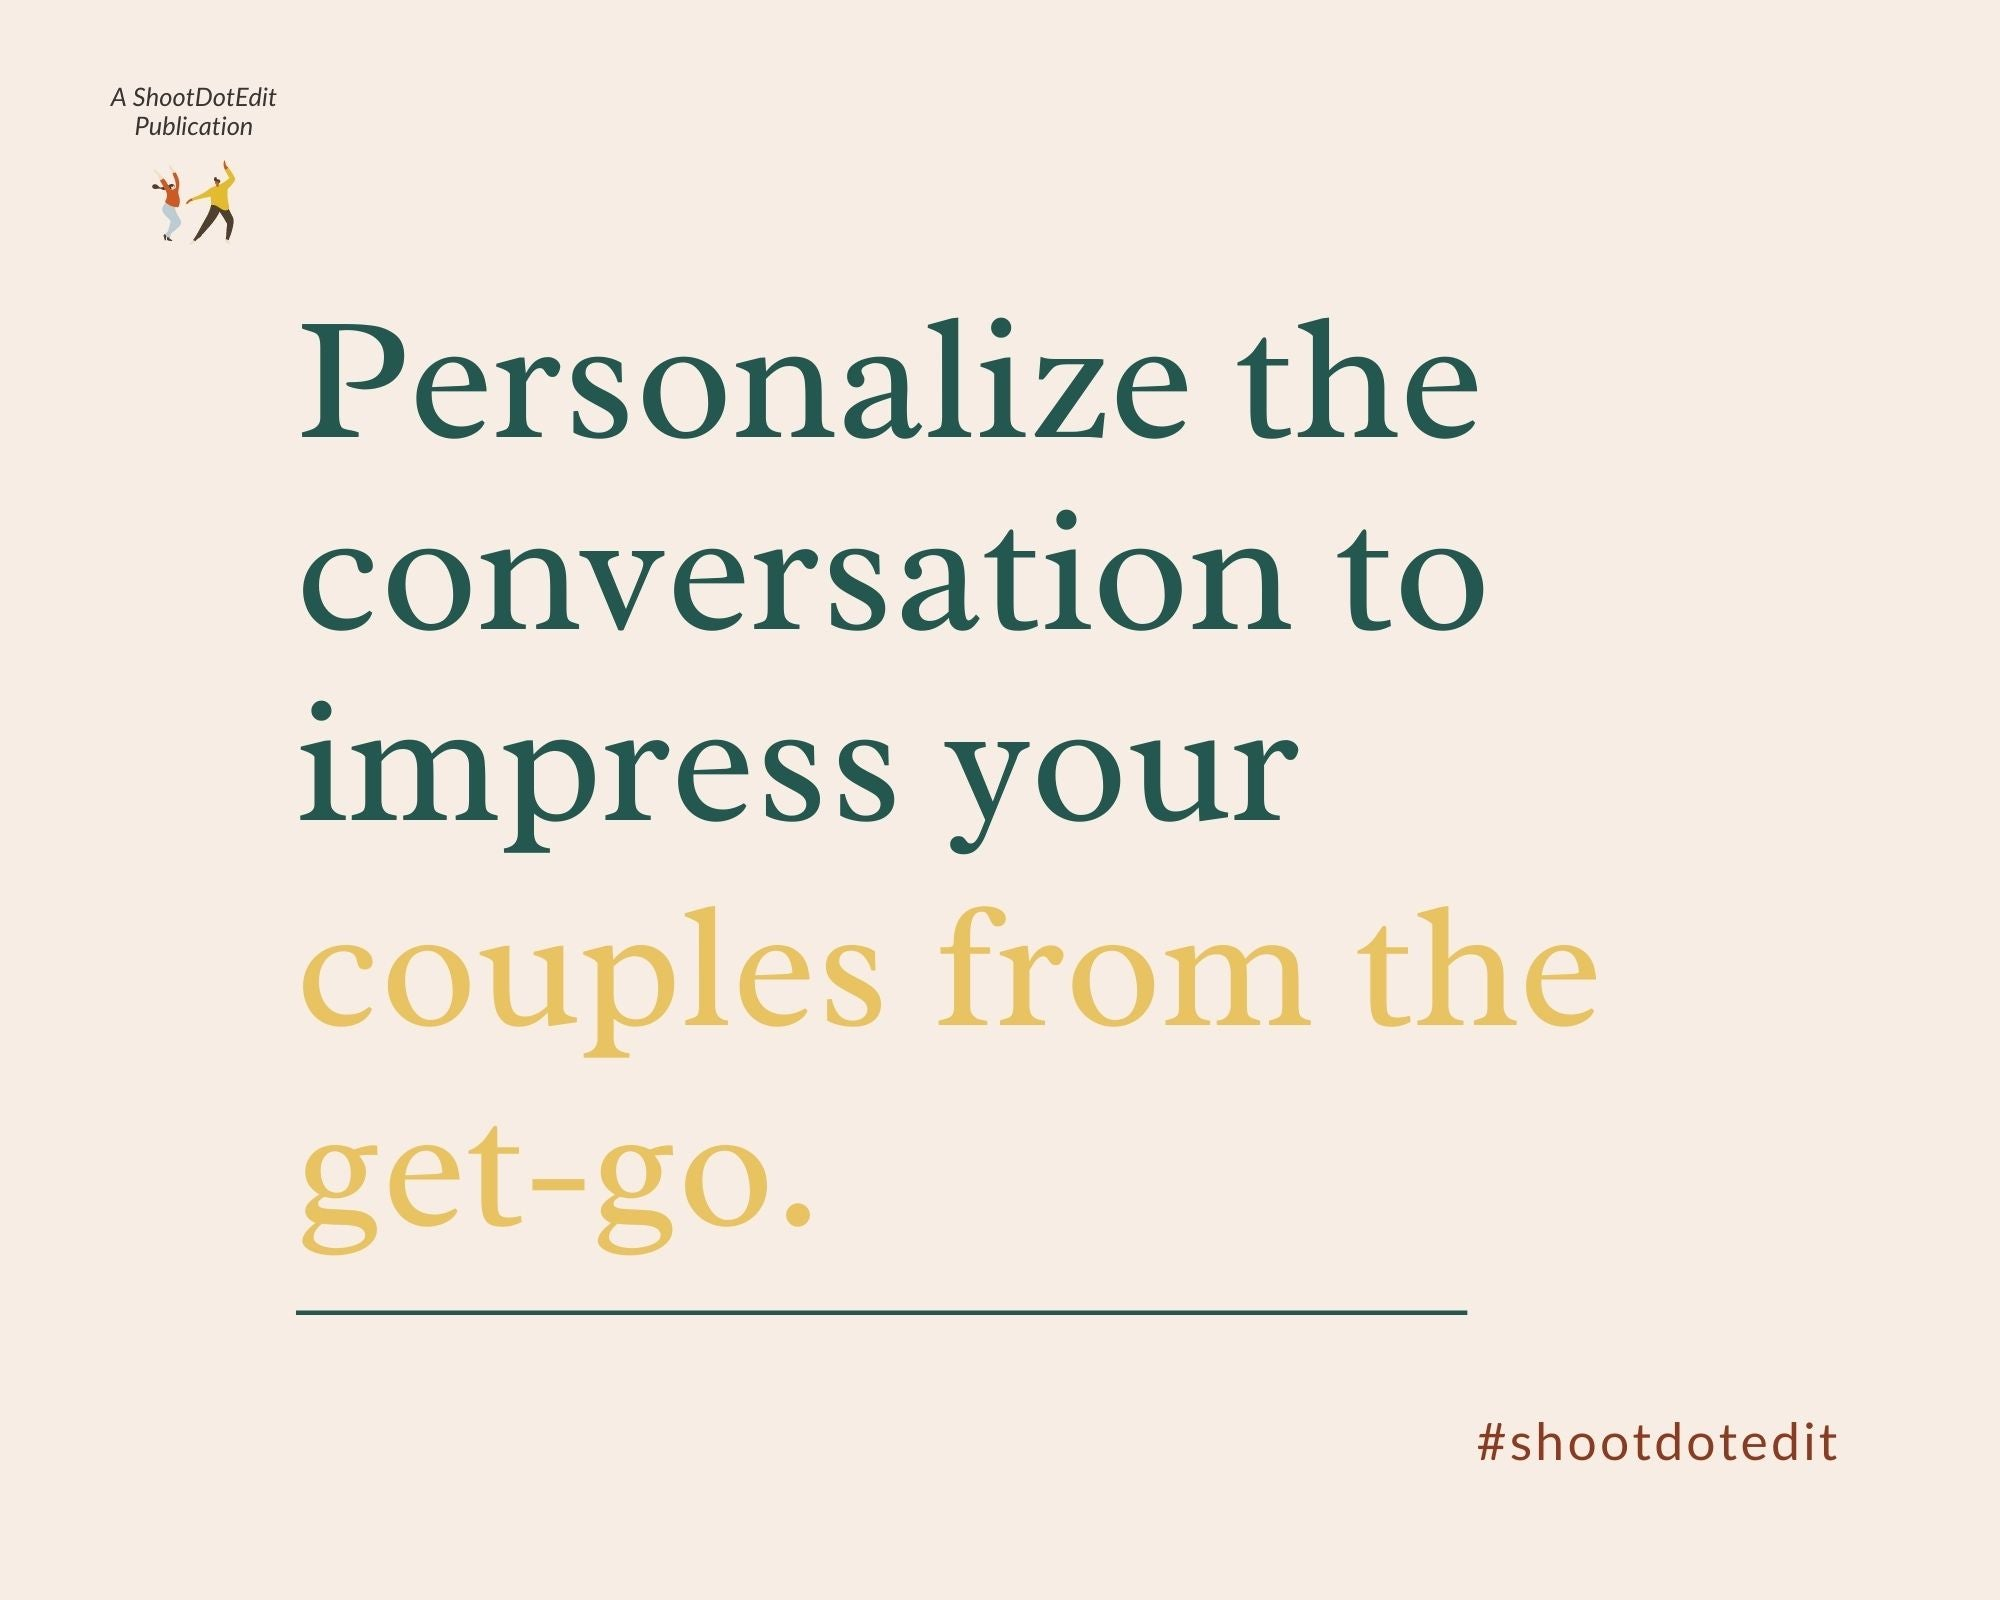 Infographic stating personalize the conversation to impress your couples from the get go